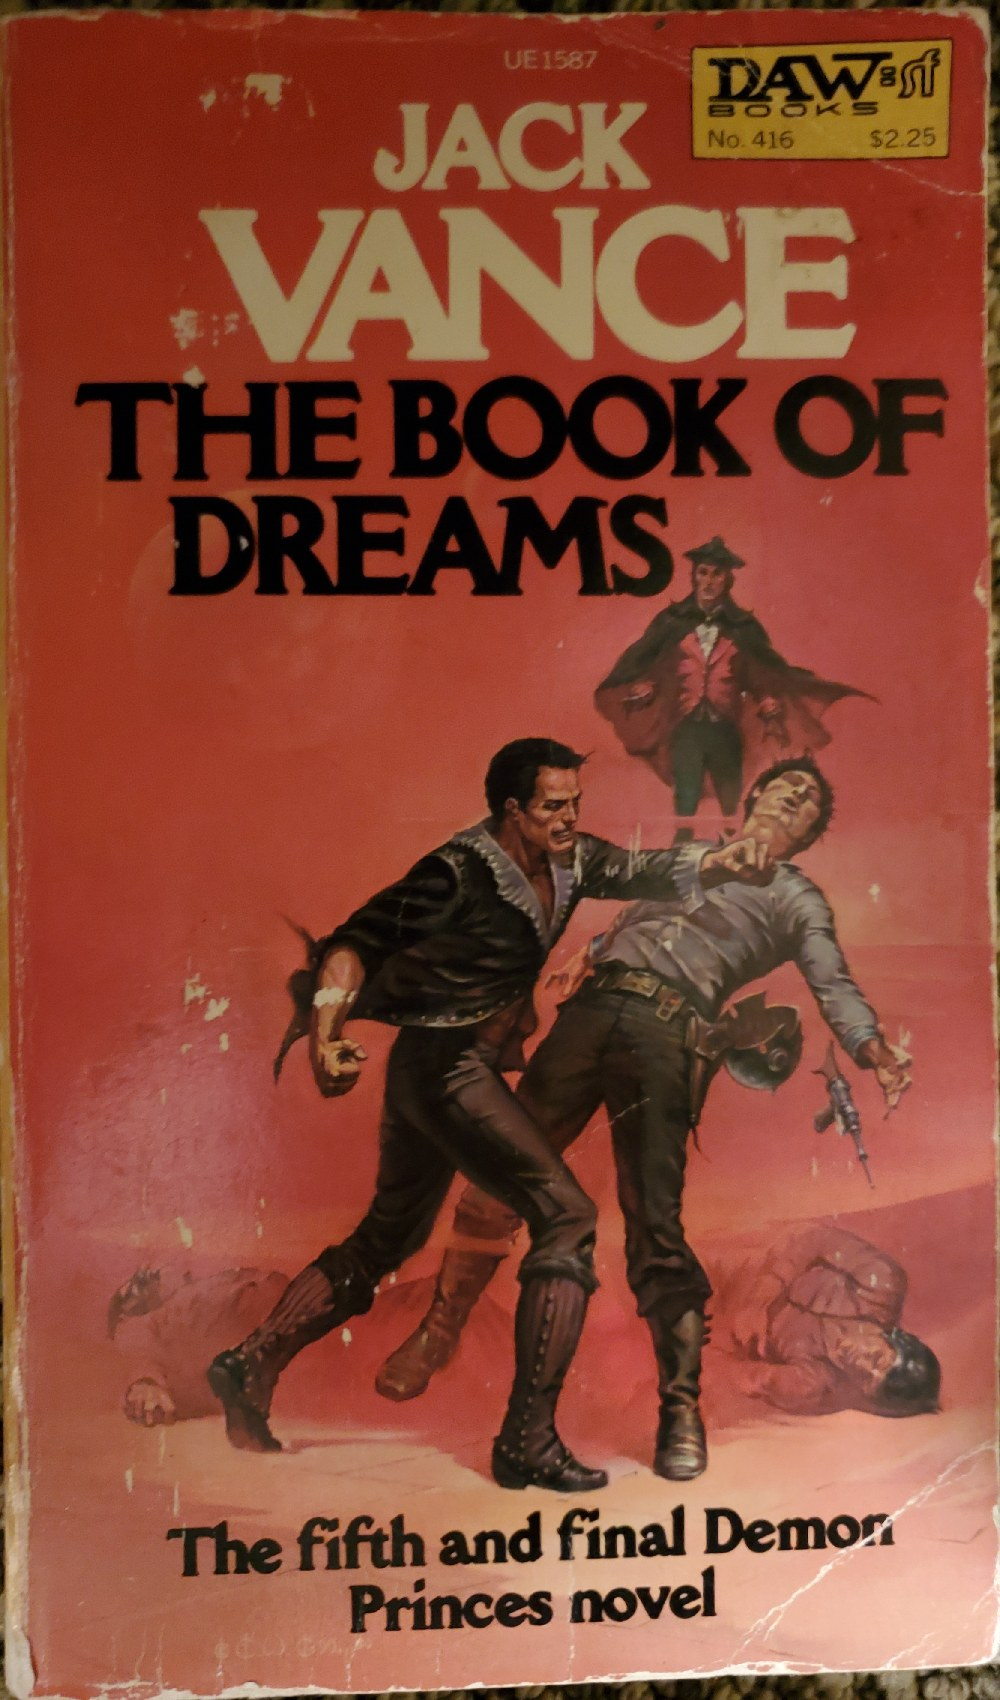 'I got your book of dreams right here, buddy'